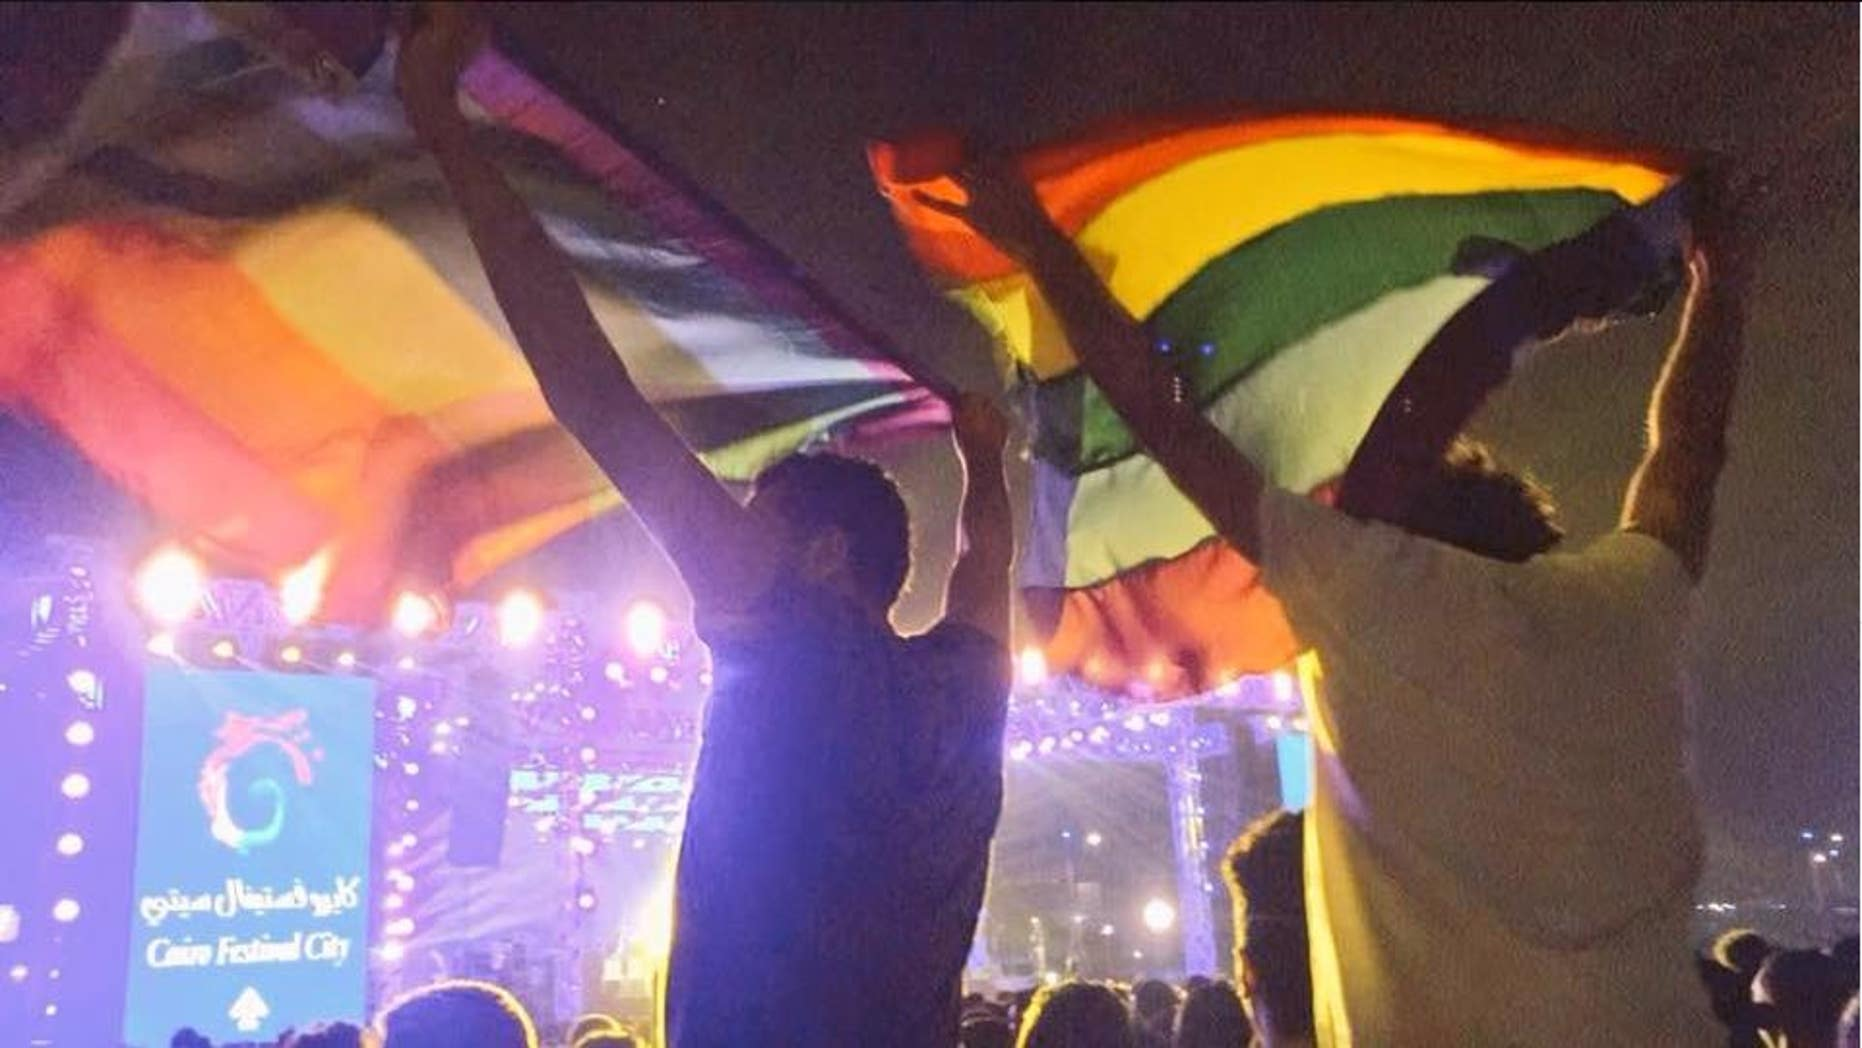 Seven people were arrested at a concert in Egypt for displaying a rainbow flag.